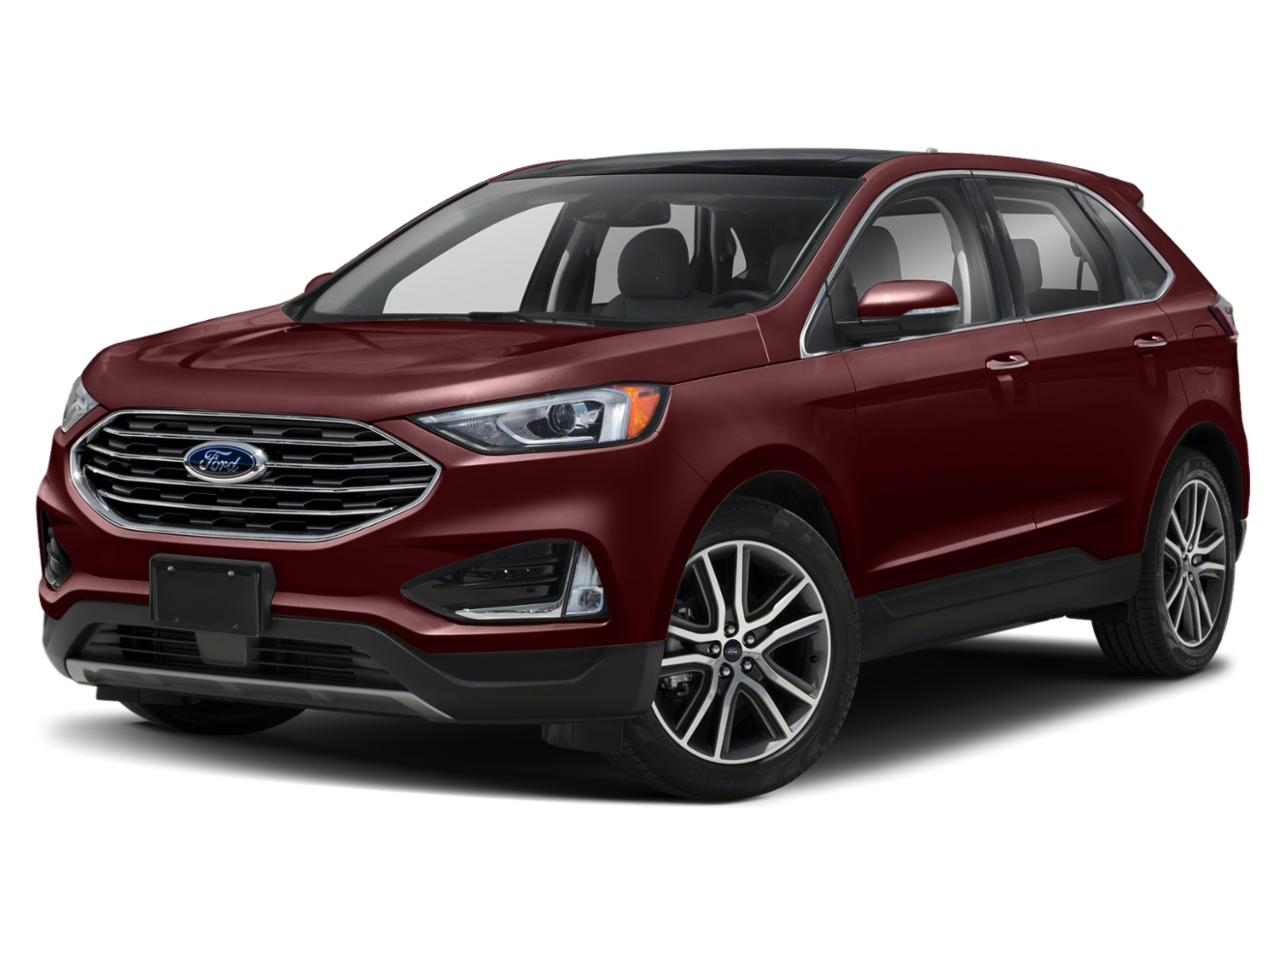 2020 Ford Edge Vehicle Photo in Quakertown, PA 18951-1403